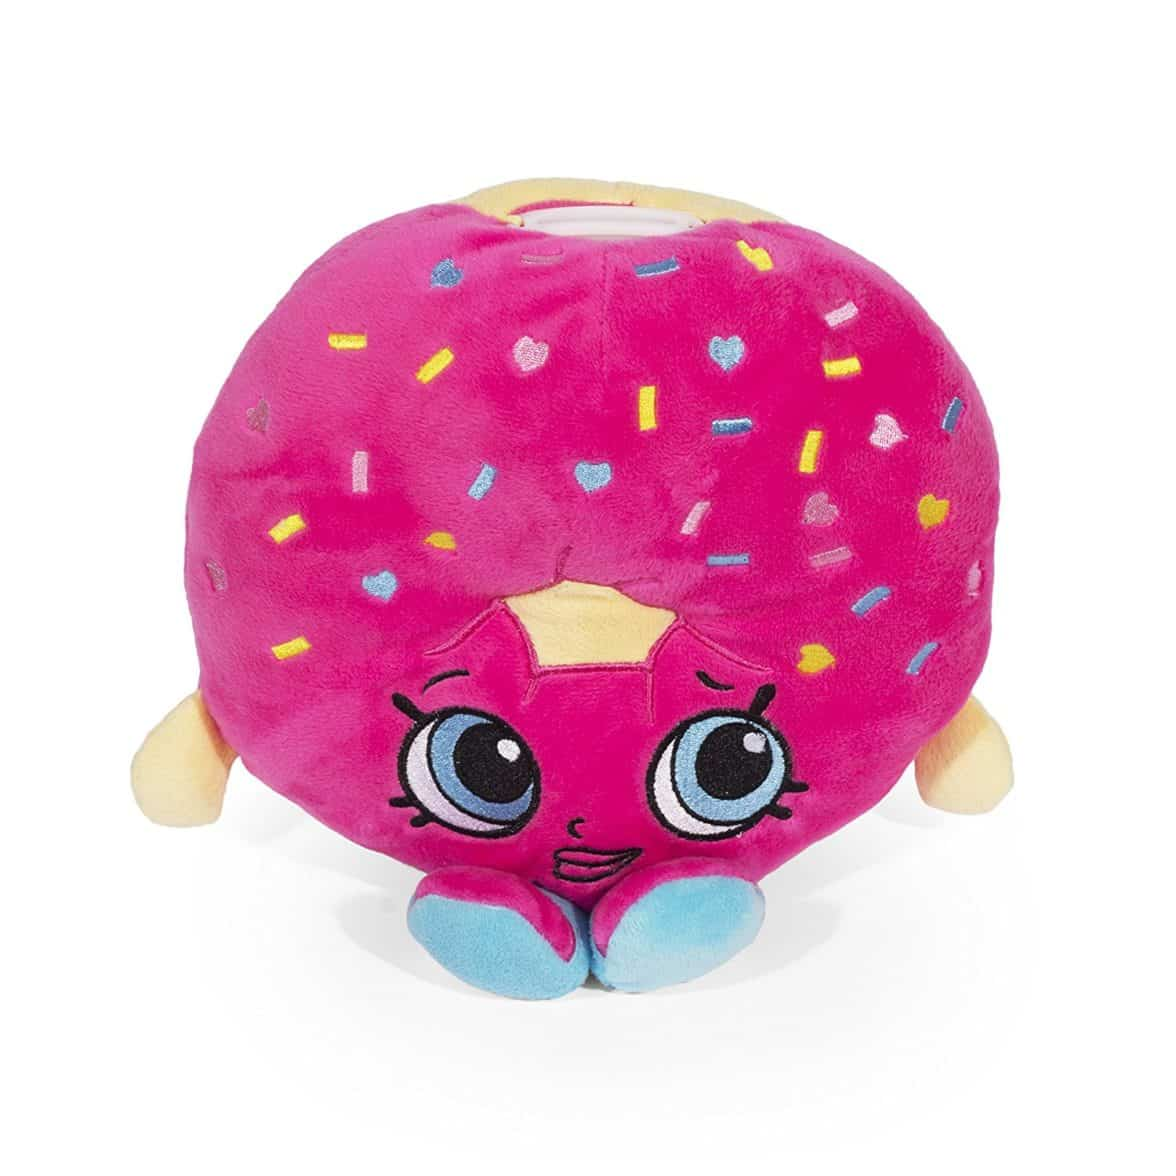 Shopkins D'Lish Donut Plush Coin Bank